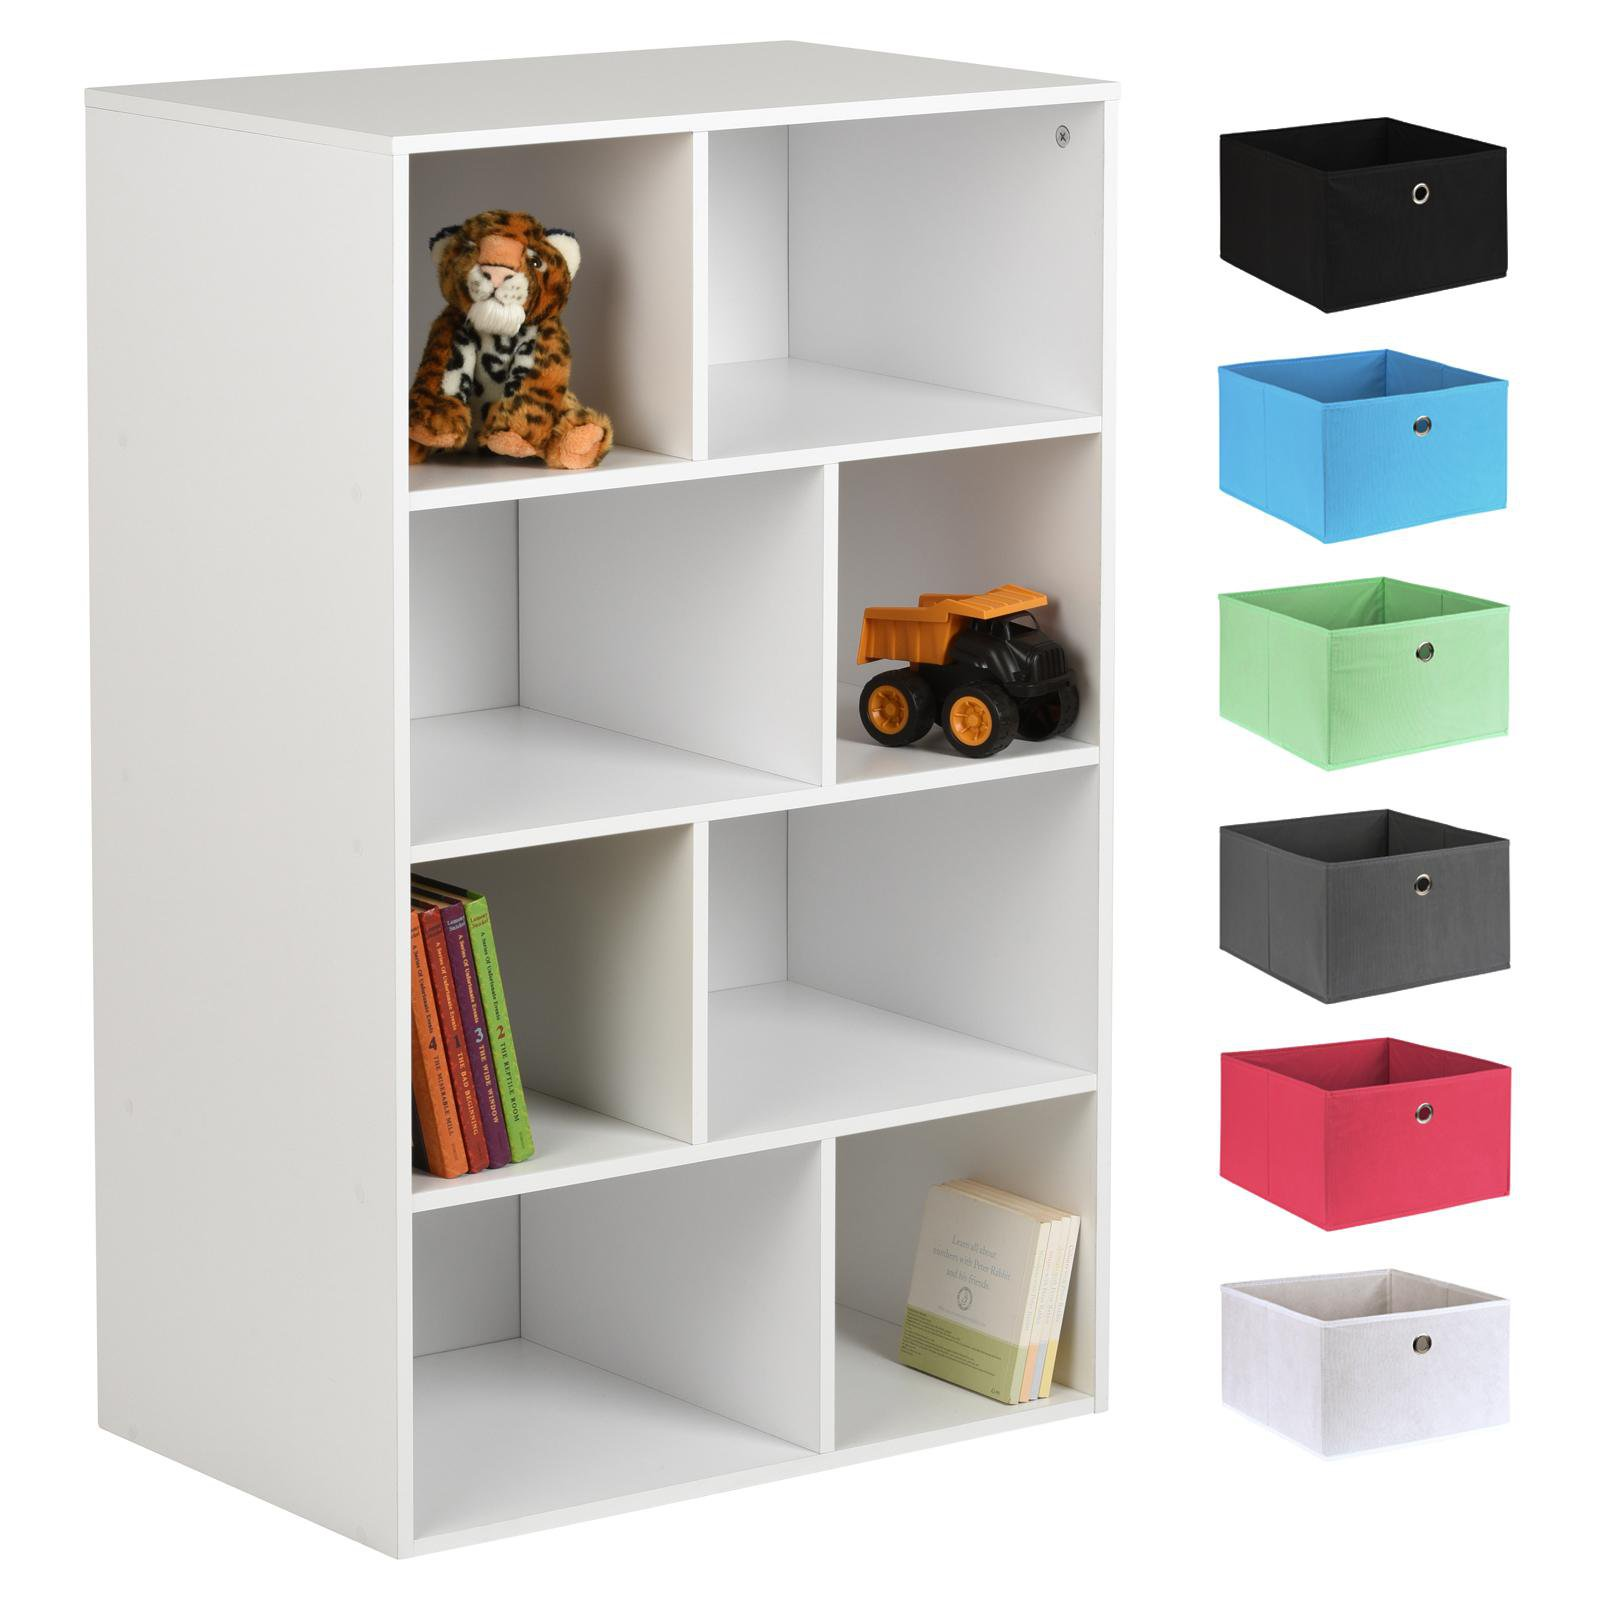 image-Hartleys White 8 Cube Kids Storage Unit